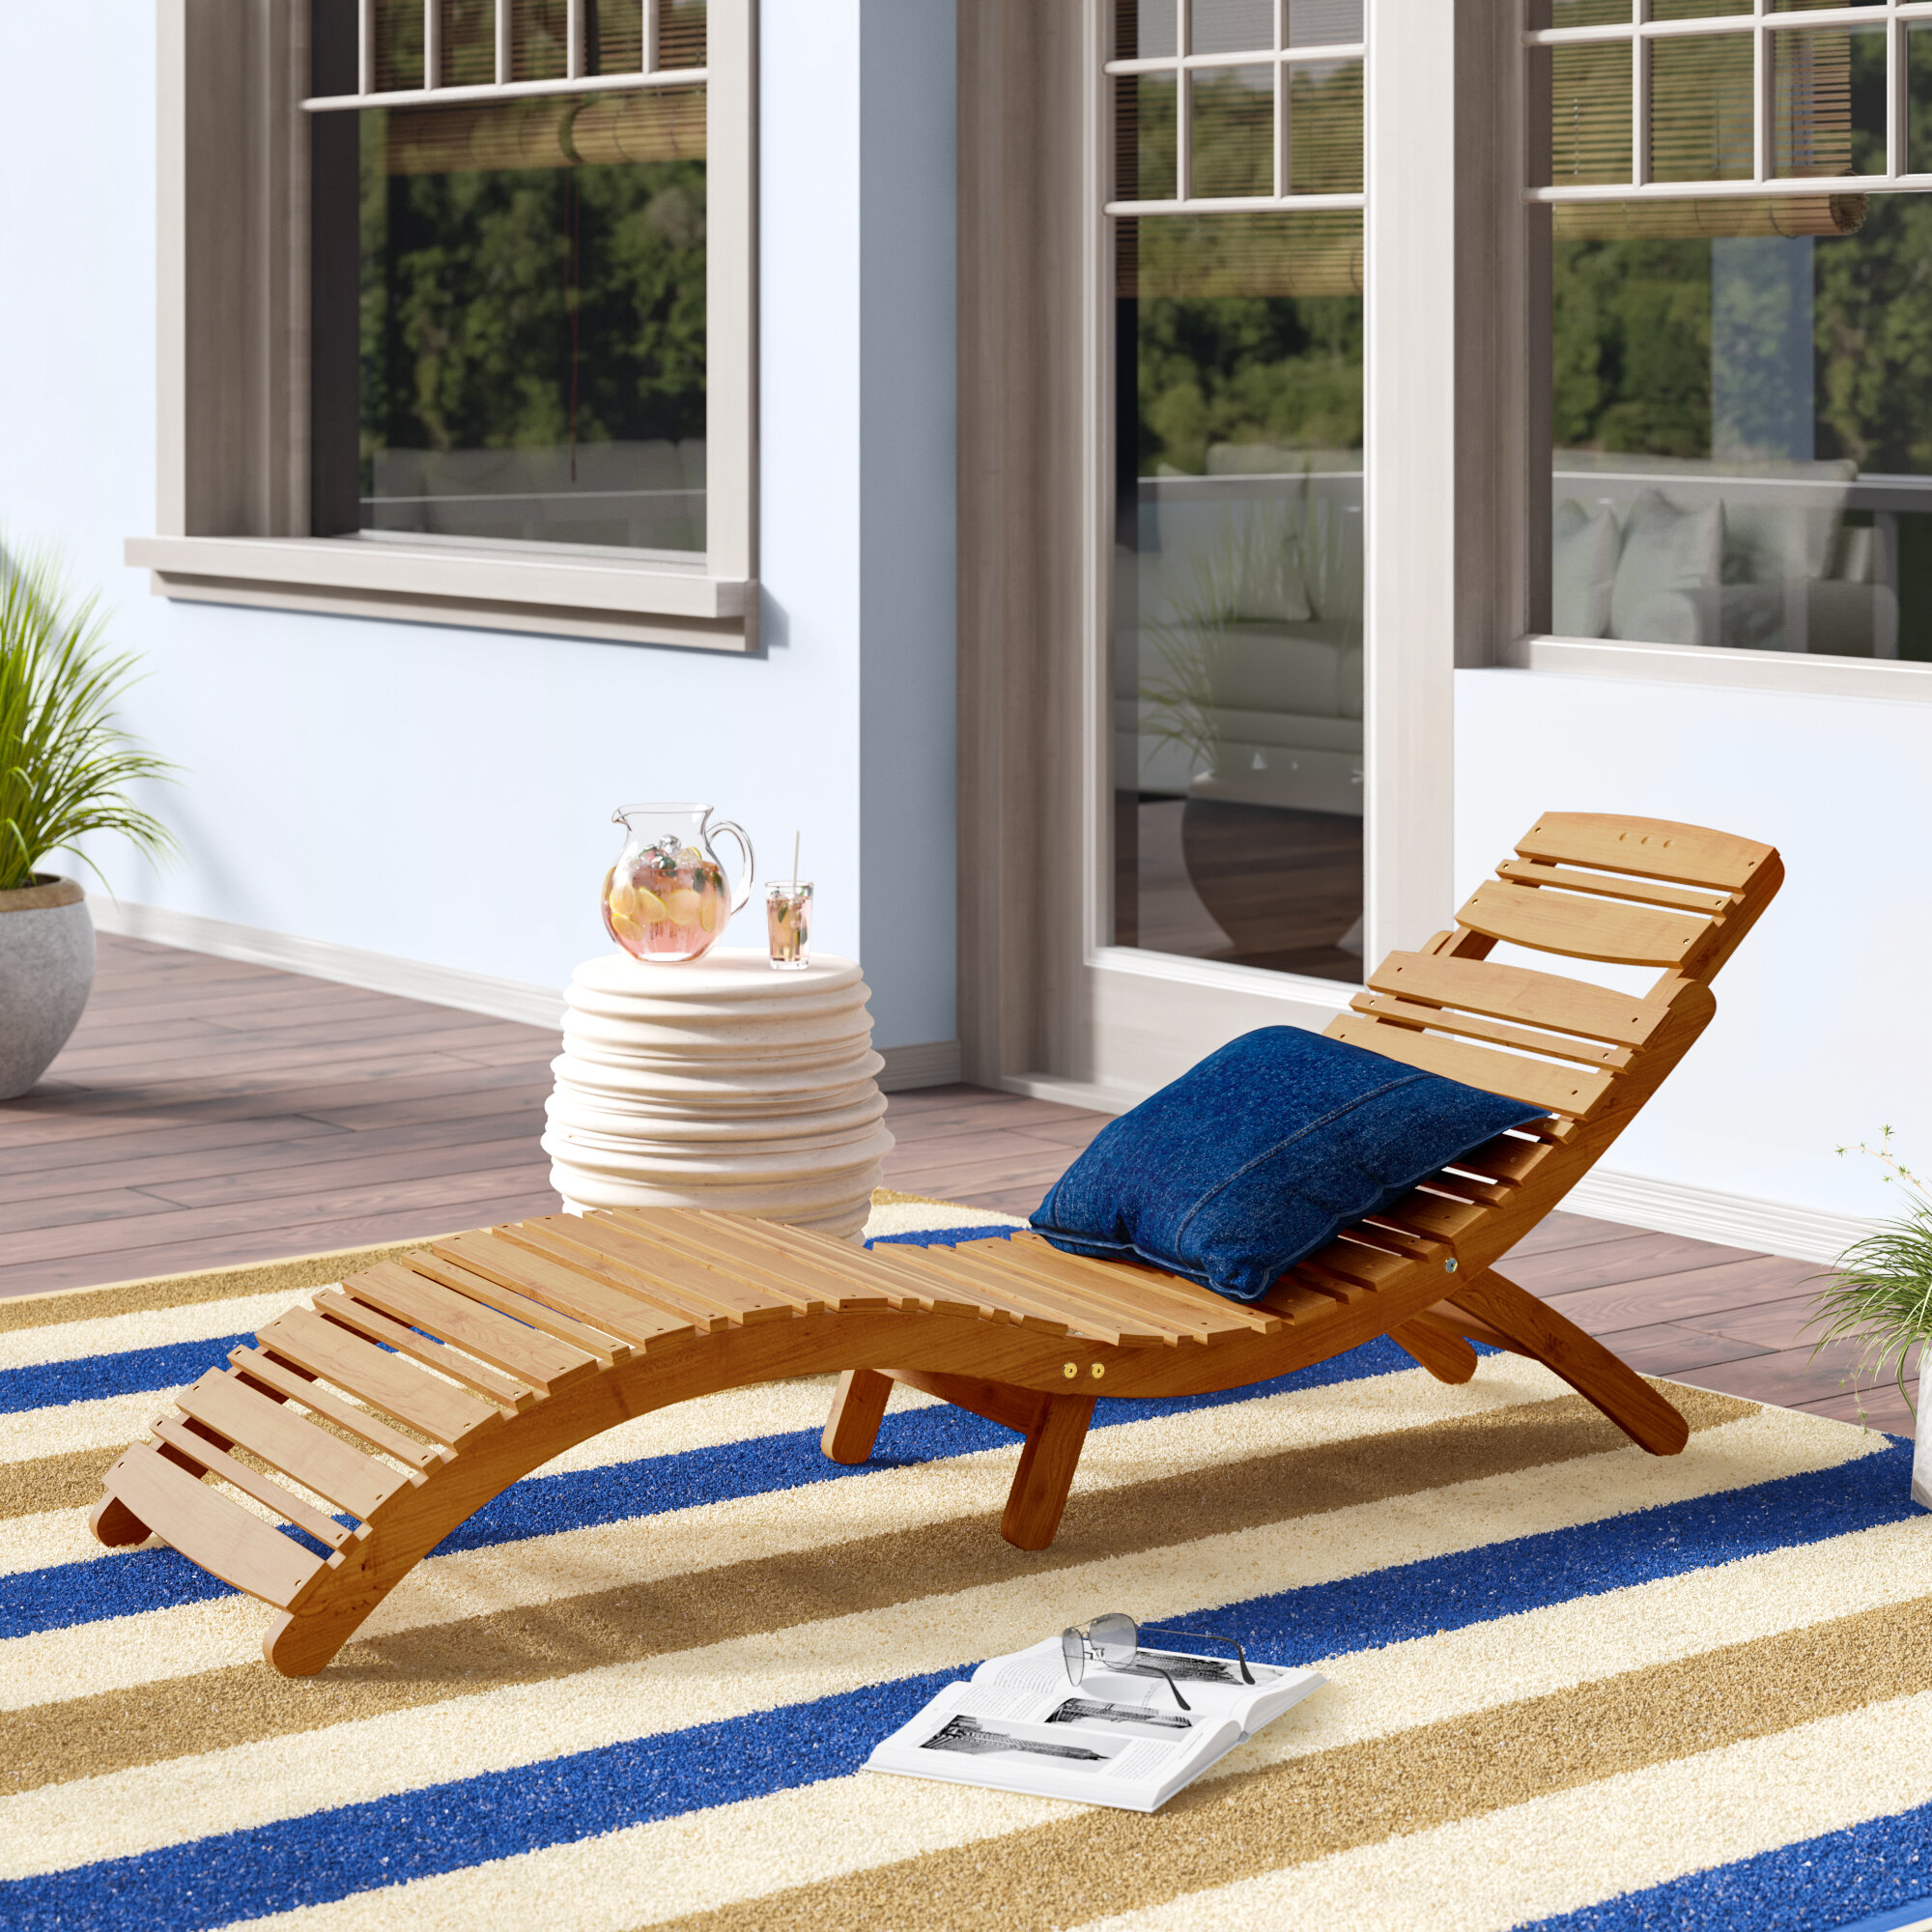 - Beachcrest Home Tifany Wood Outdoor Chaise Lounge & Reviews Wayfair